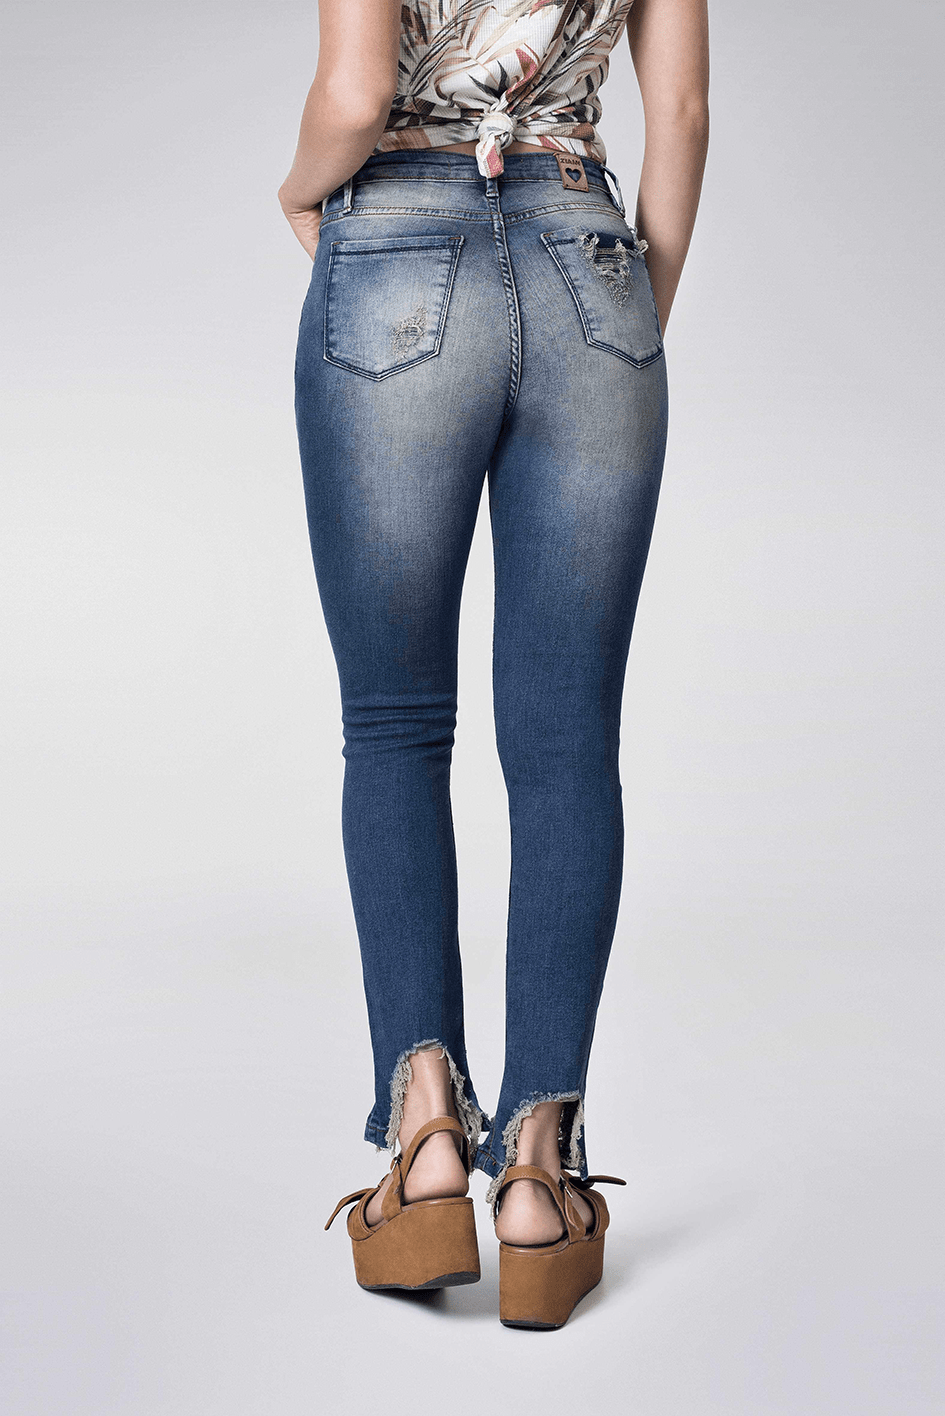 CROPPED: 21031